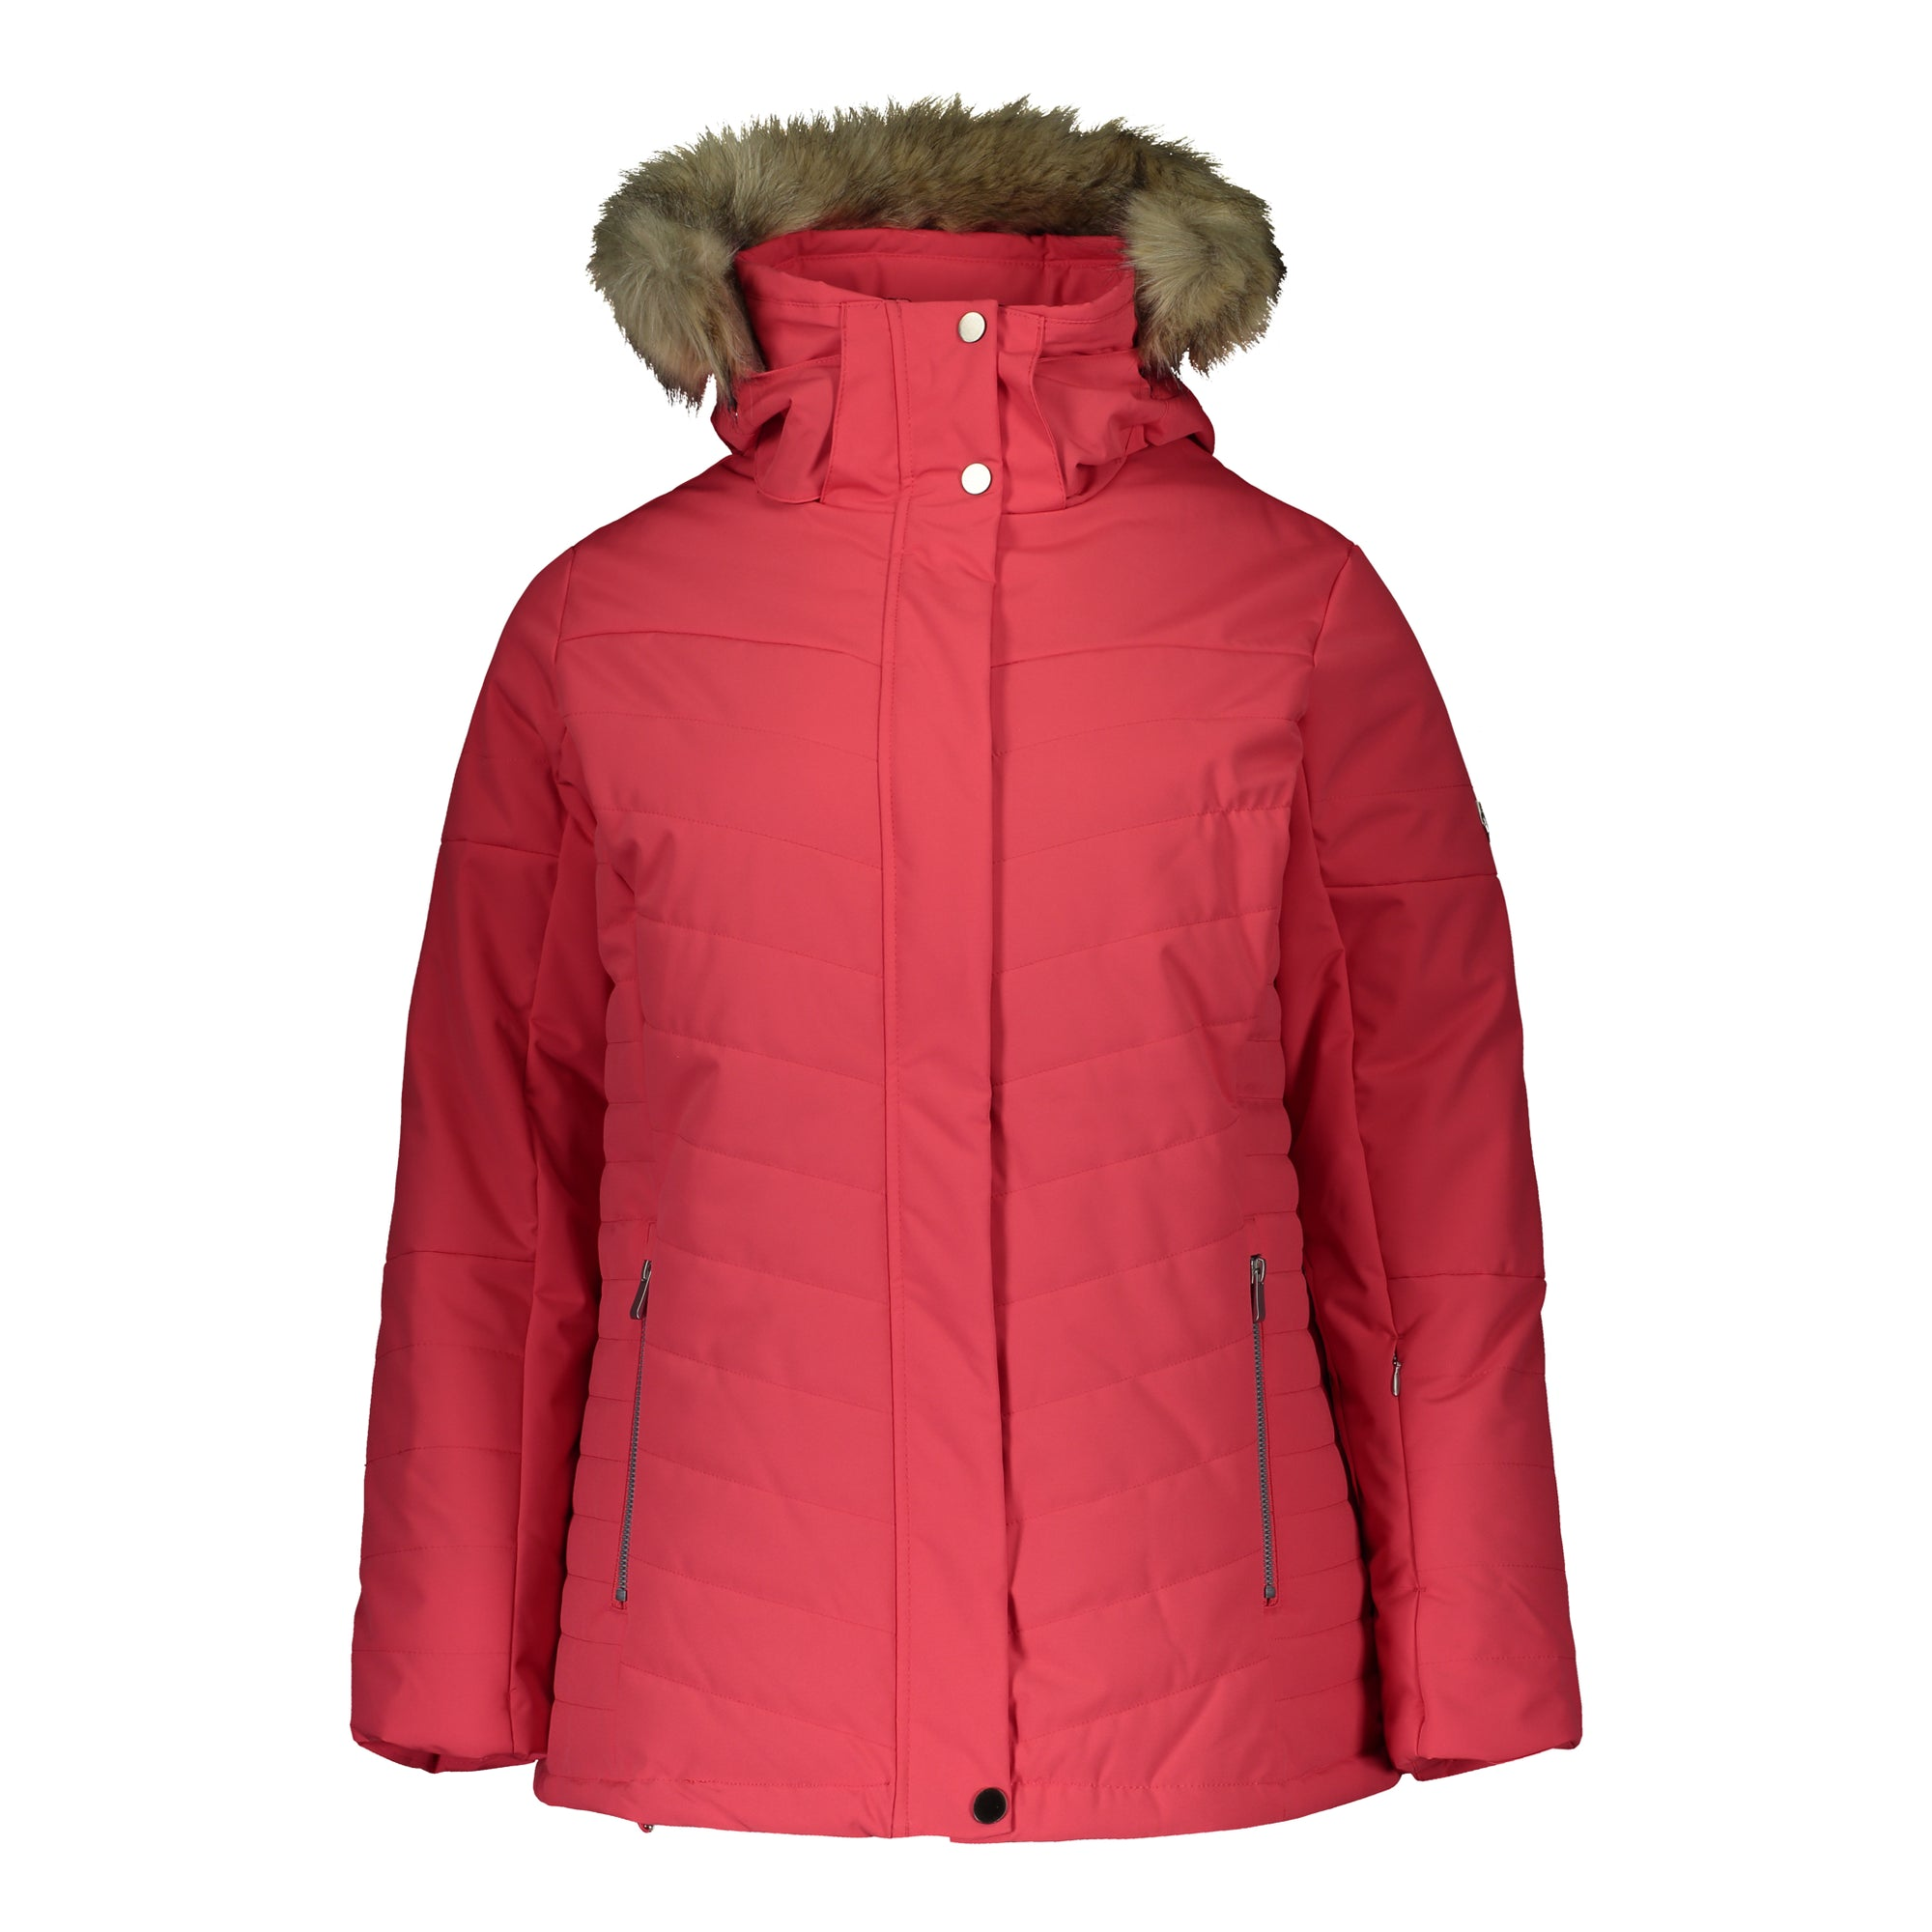 Kikai R+ Women's Ski Jacket